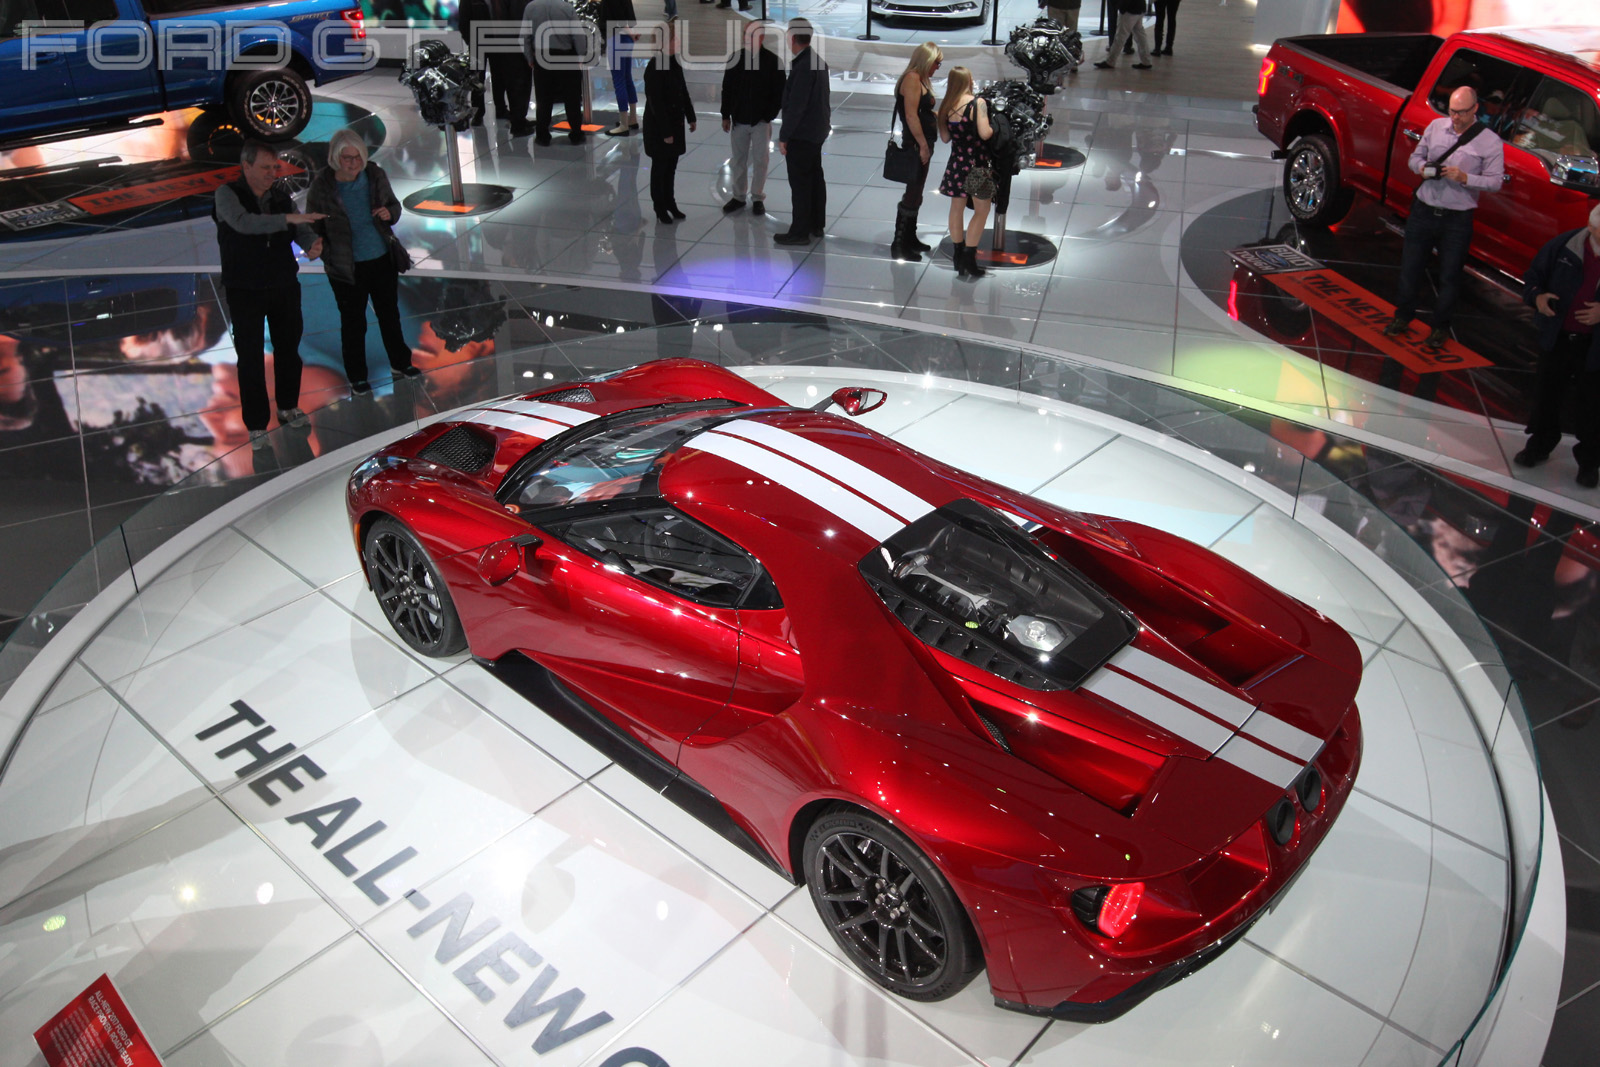 Ford-GT-Autoshow-3000-7